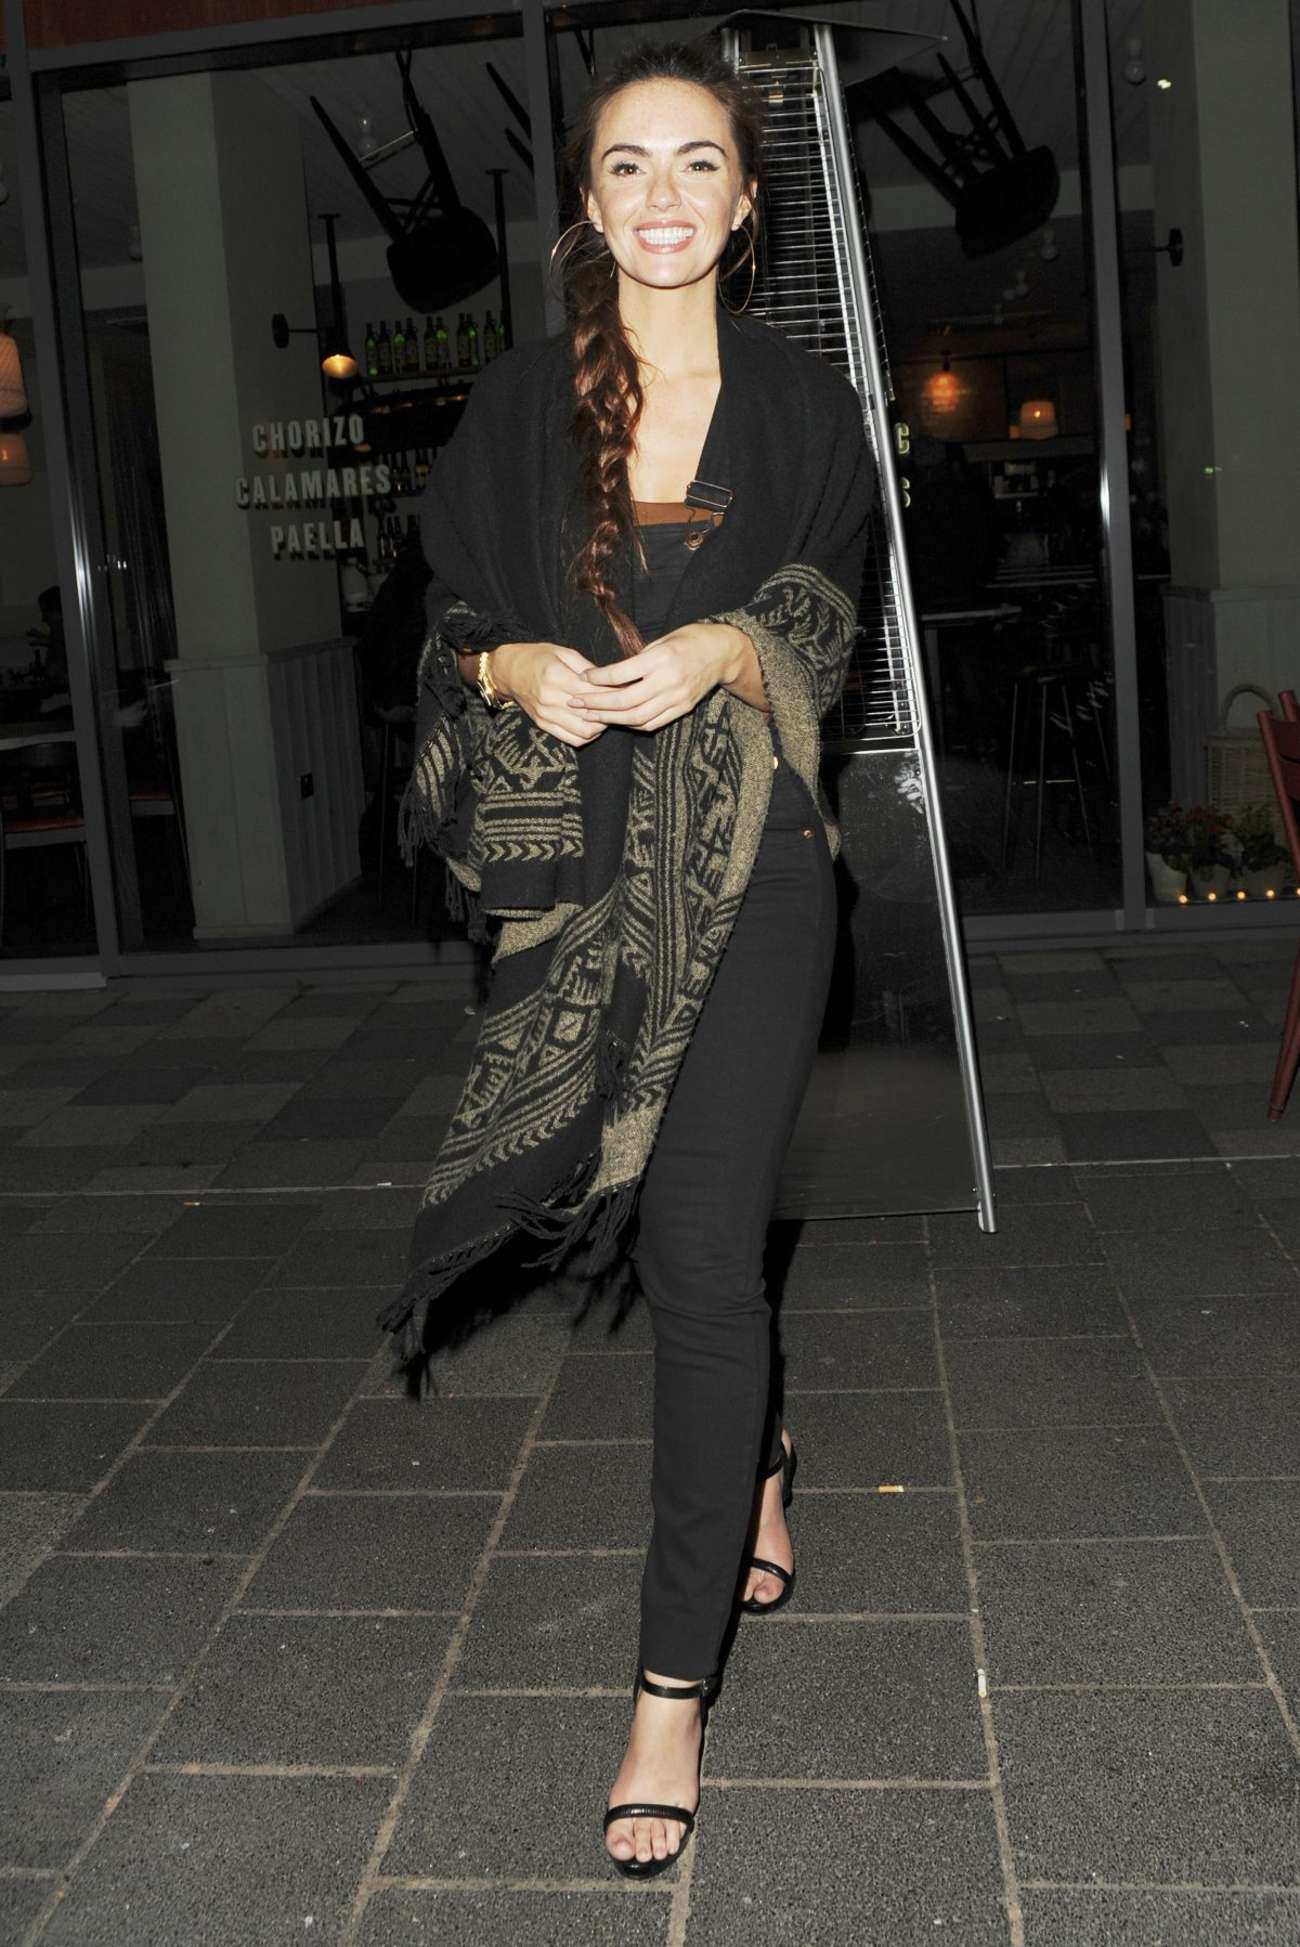 Jennifer Metcalfe Tapas Revolution in Shoreditch